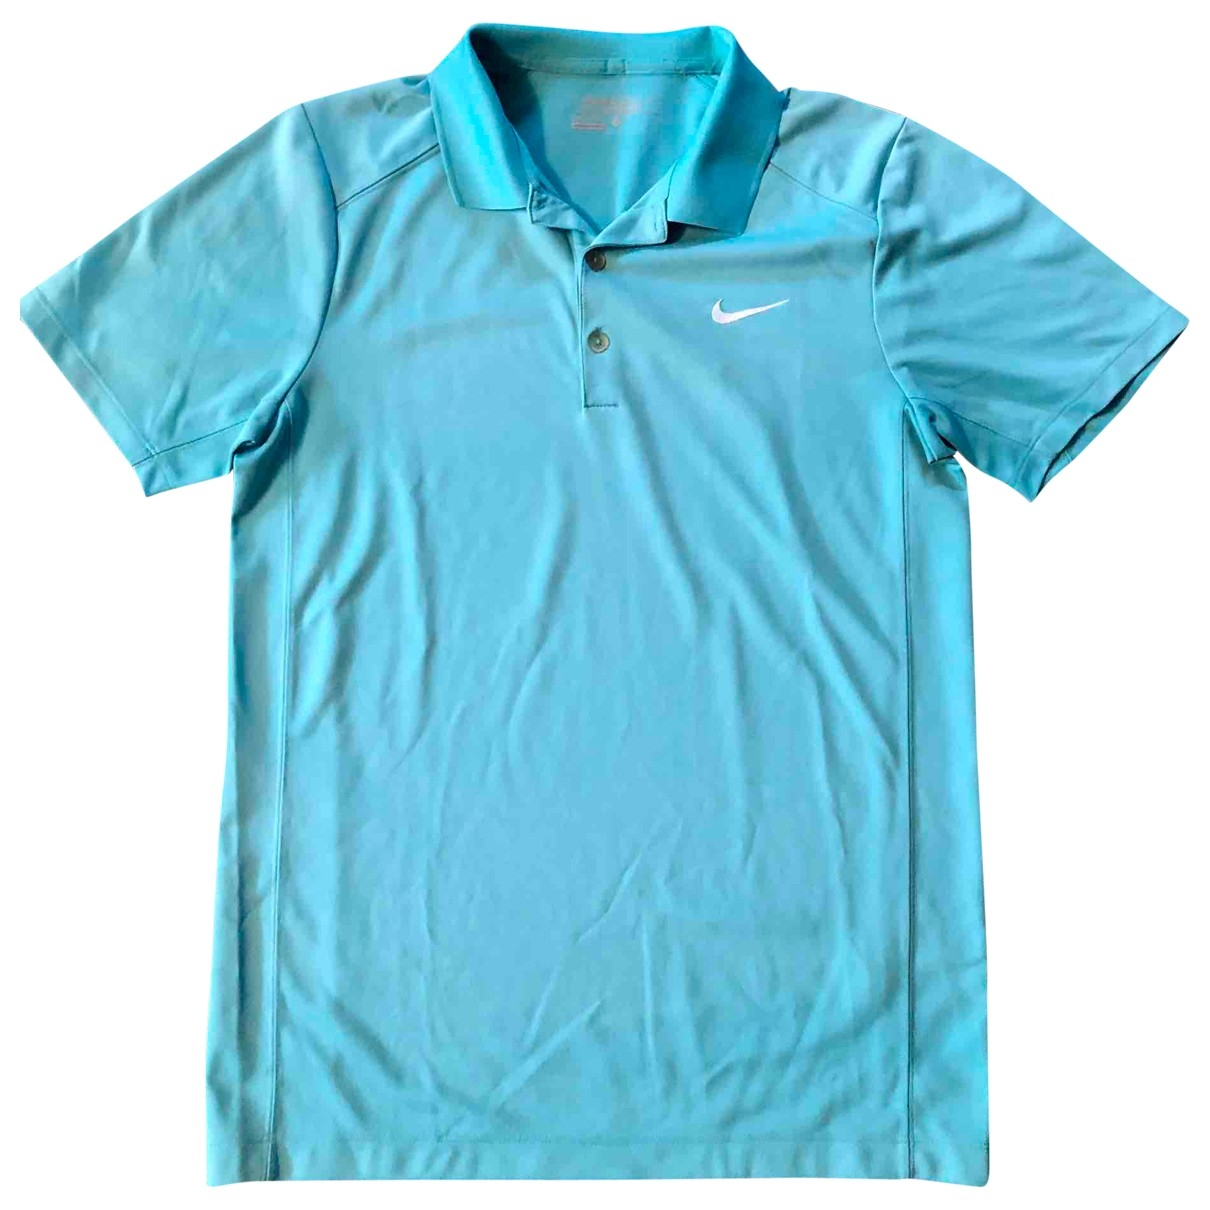 Nike - Polos   pour homme - turquoise